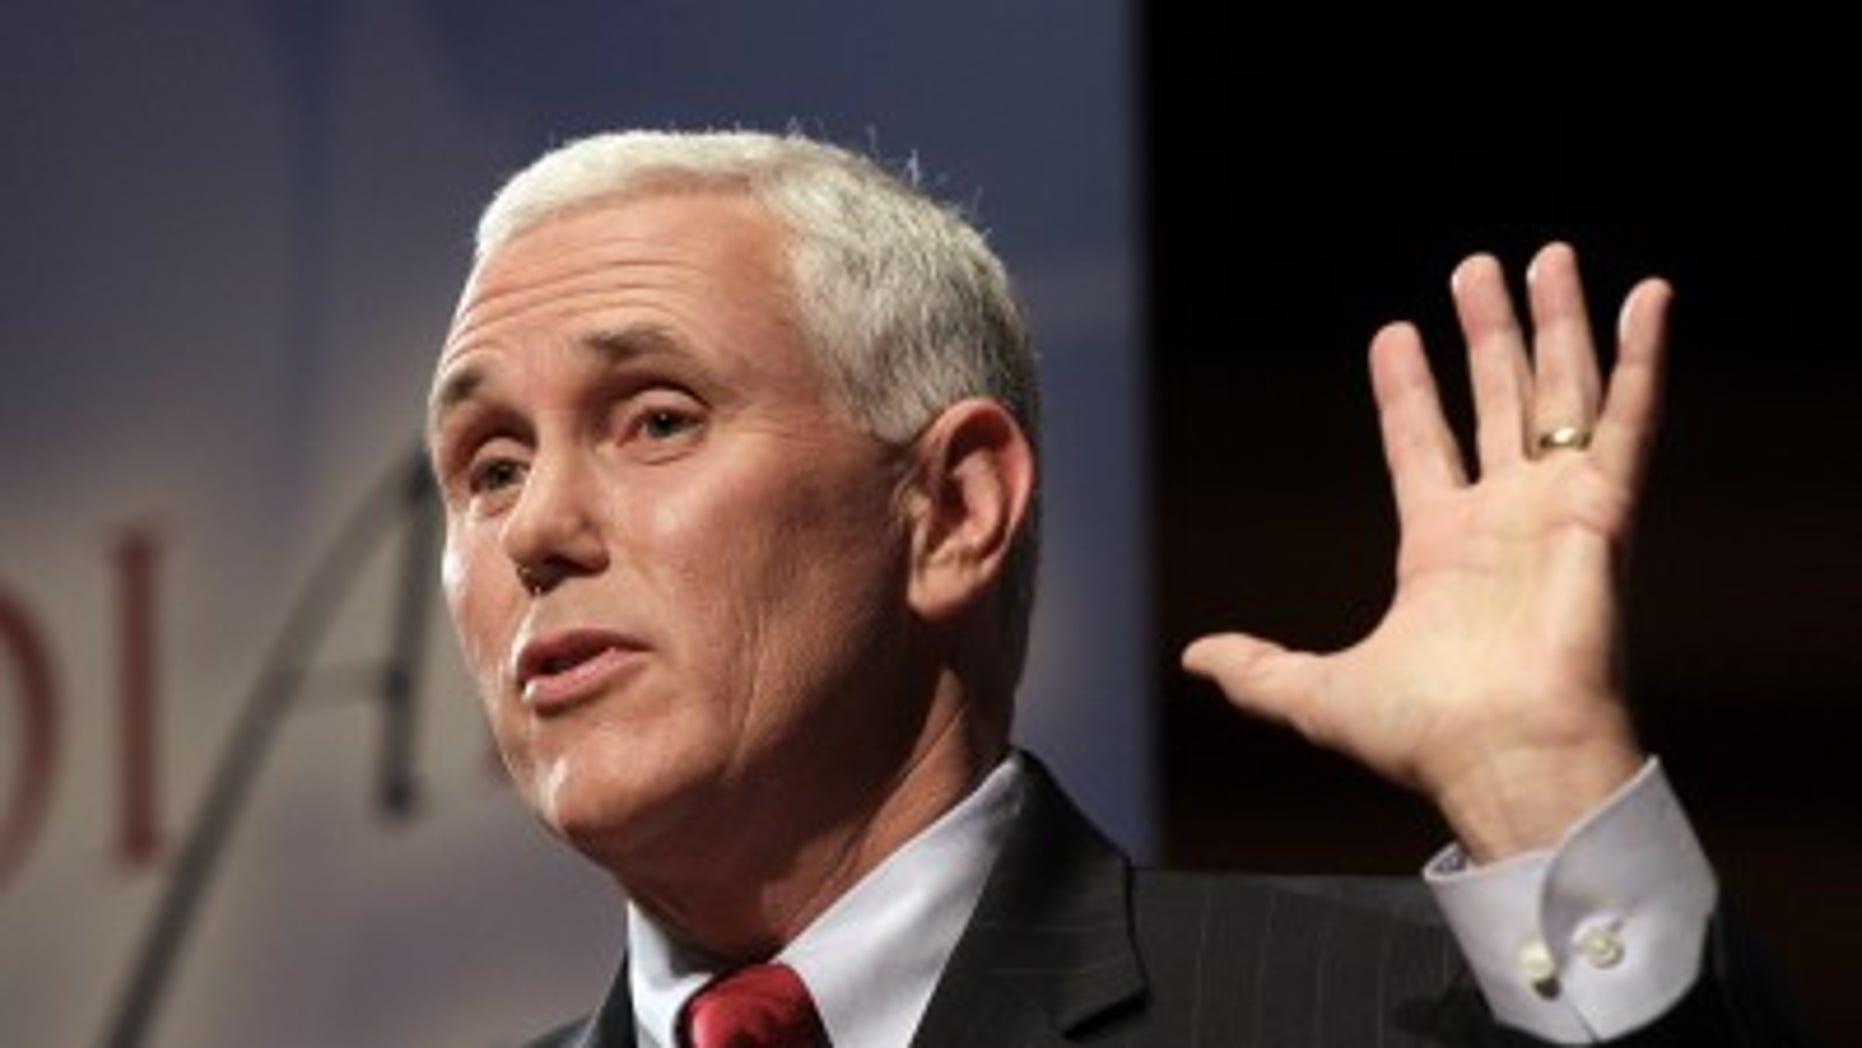 Mike Pence in 2012.